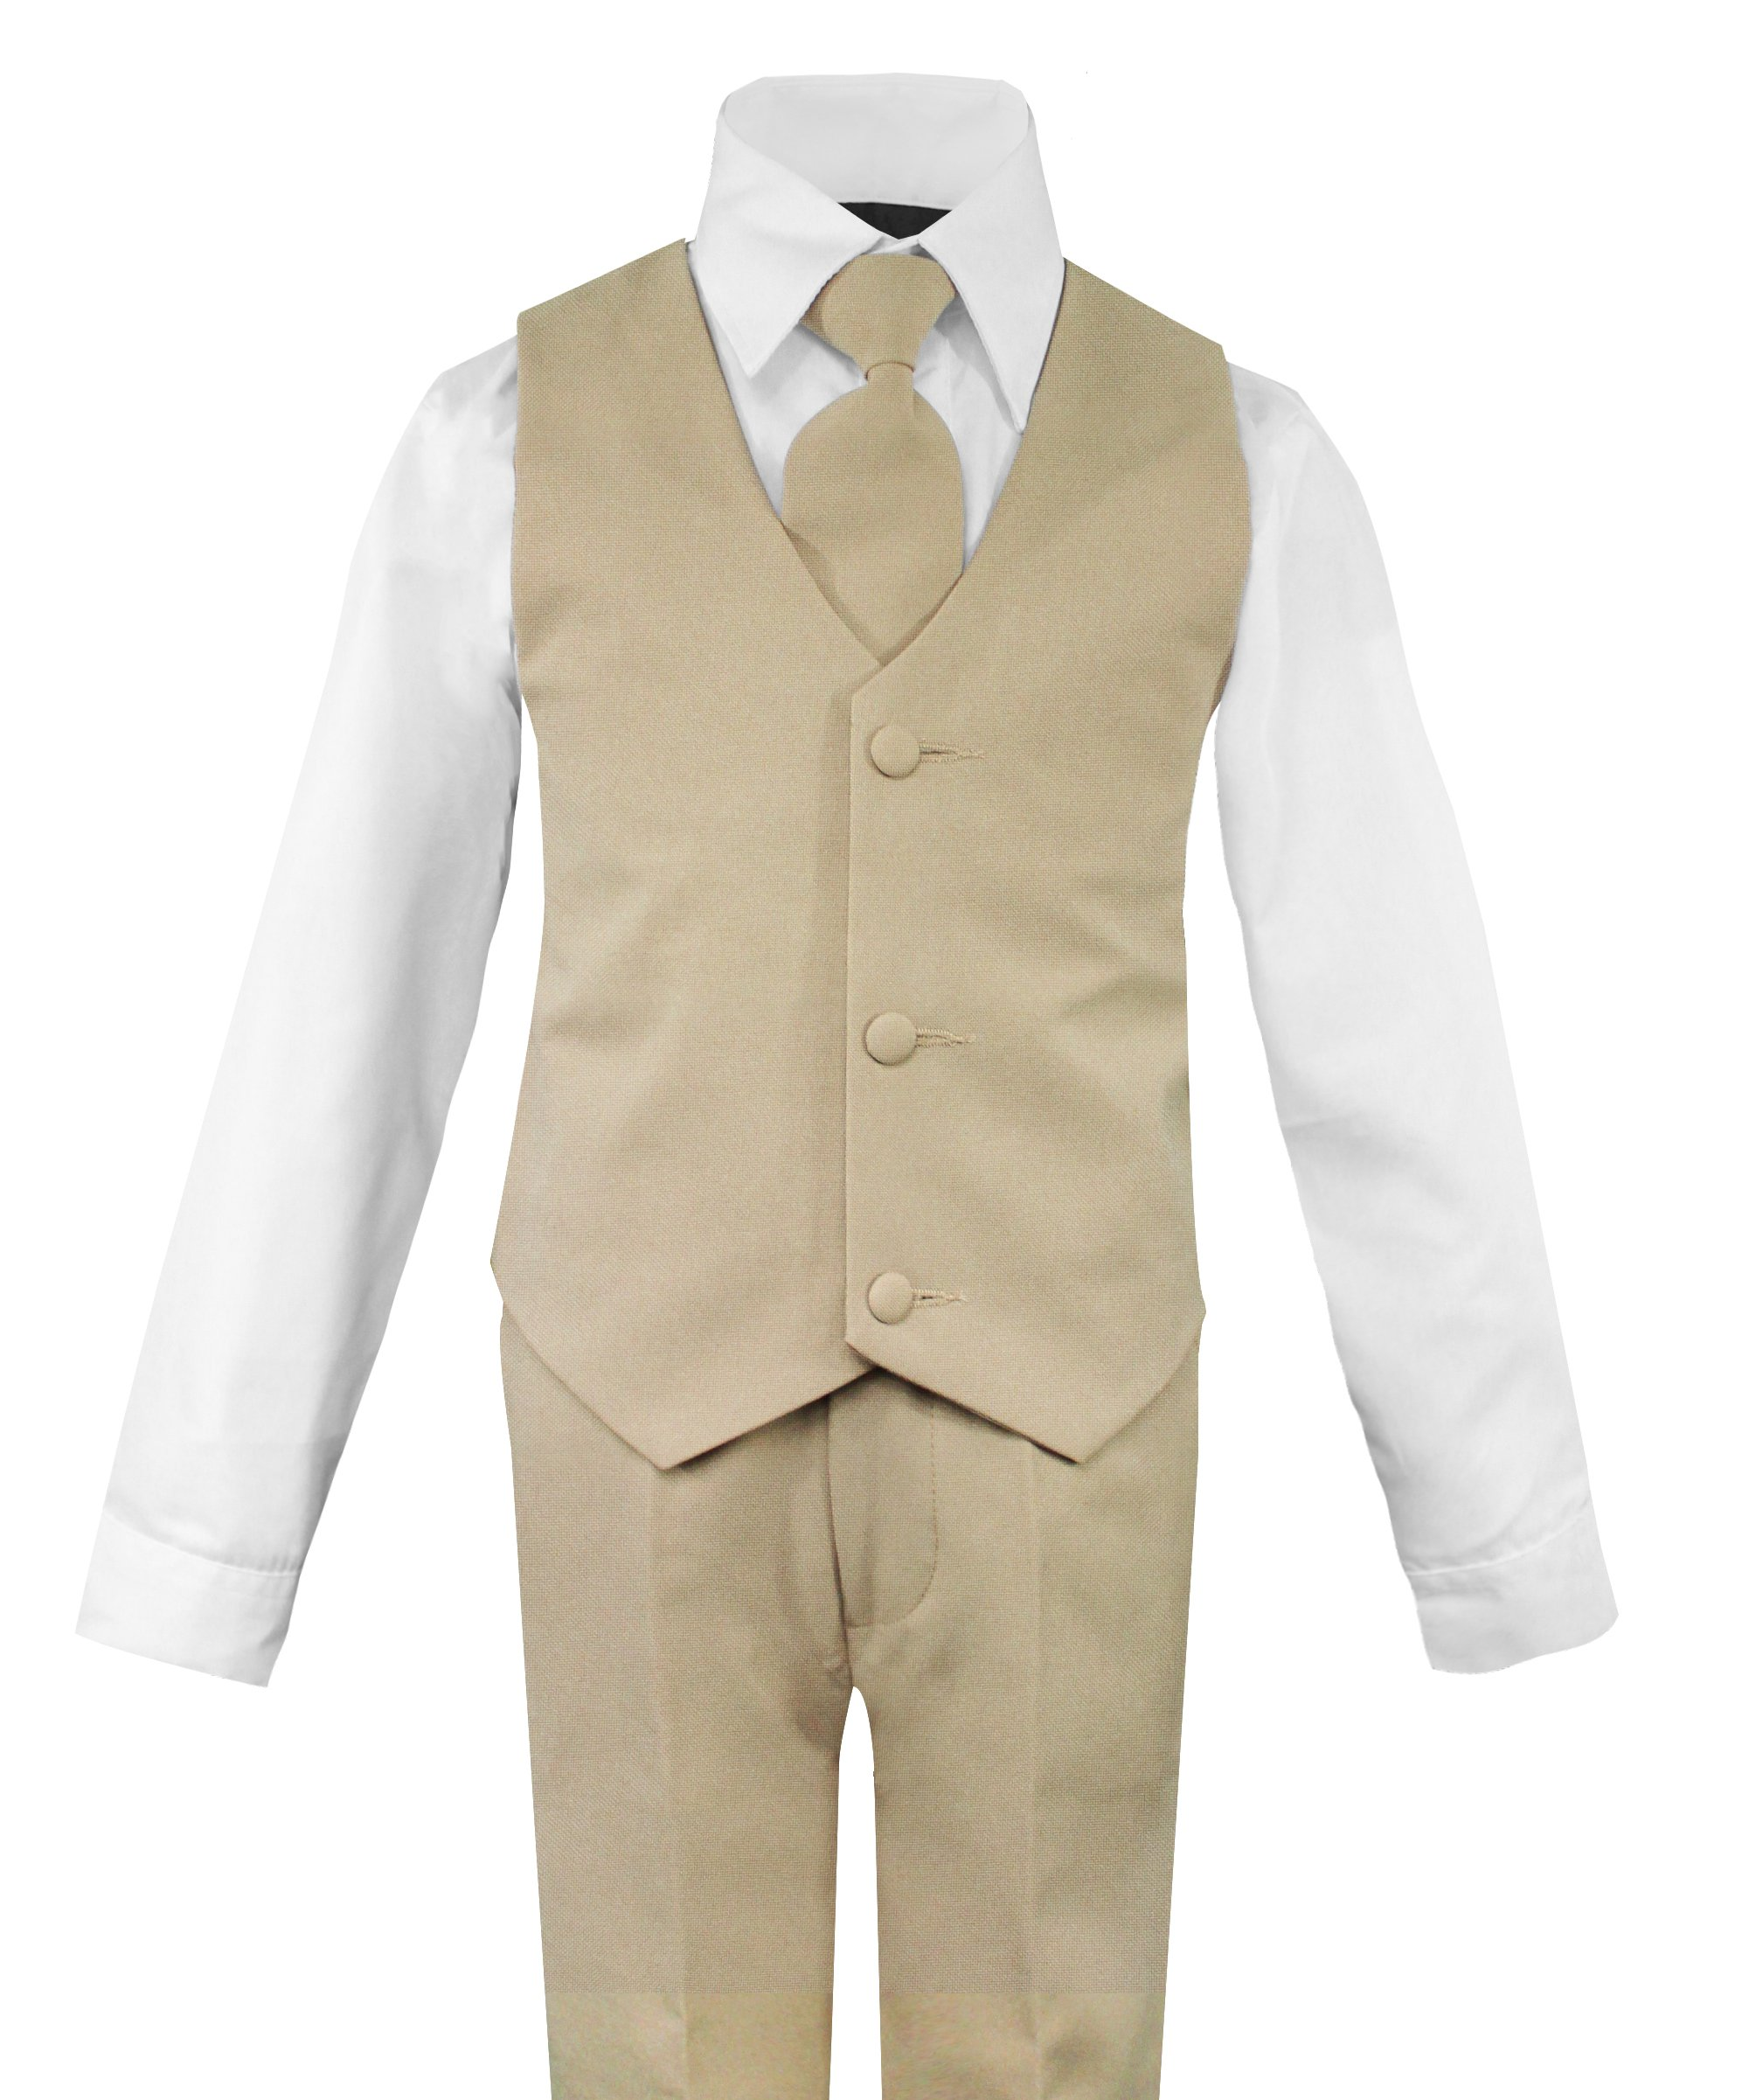 Luca Gabriel Toddler Boys' 5 Piece Classic Fit No Tail Formal Khaki Dress Suit Set with Tie and Vest - Size 7 by Luca Gabriel (Image #2)